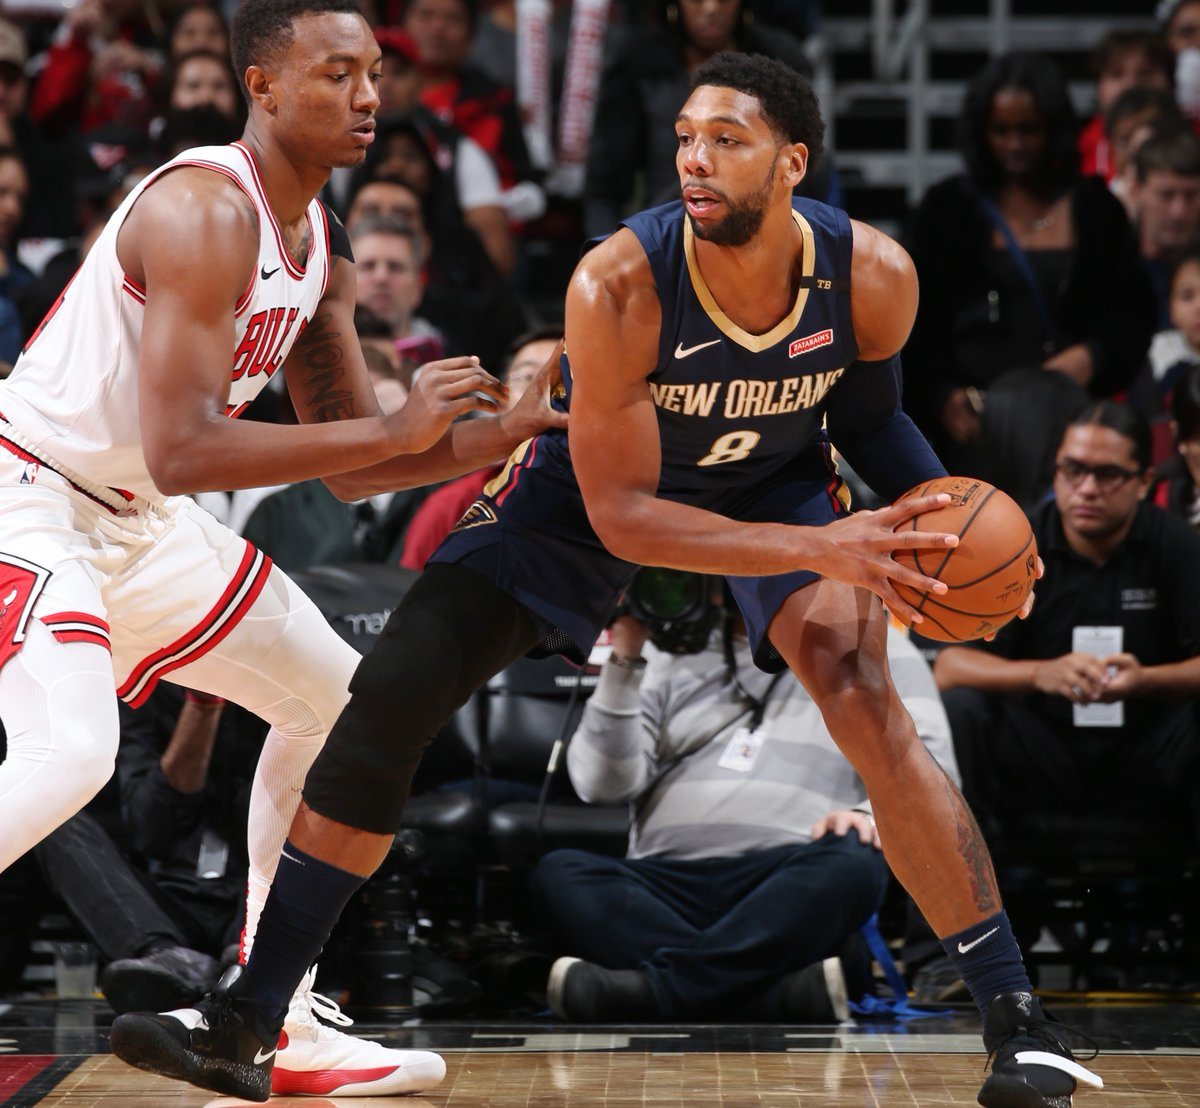 Jahlil Okafor is expected to miss approximately 1-2 weeks with a right ankle sprain.  📰: https://t.co/hNyCTWxJyI